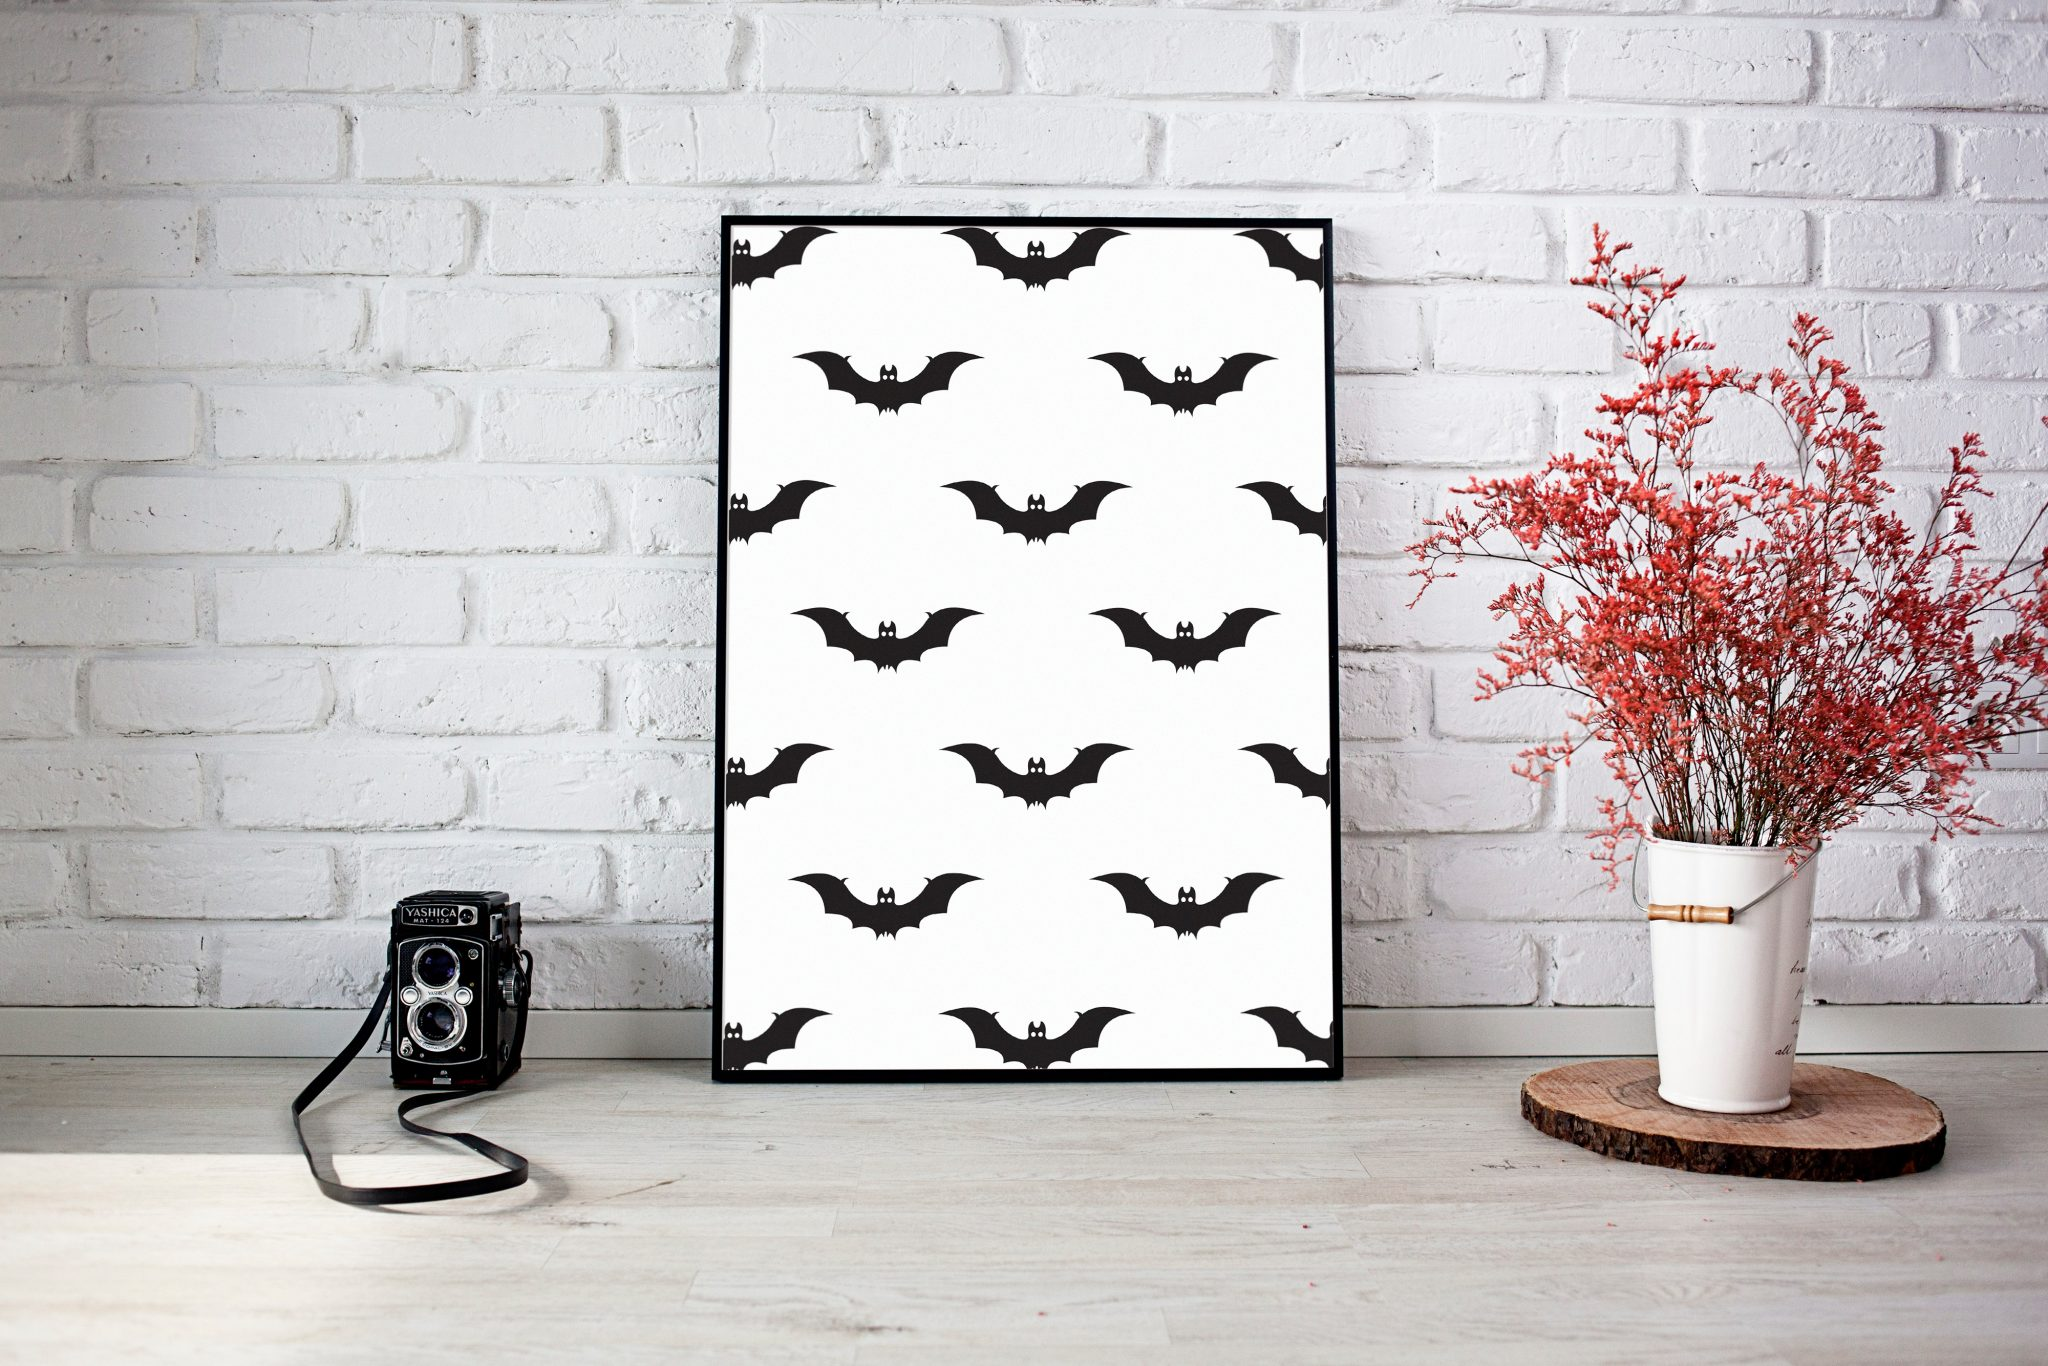 Halloween Bat Prints - Cly Halloween Prints - Bat Prints on proper framing for windows, framing around chimneys, framing doors, framing around columns, framing around hvac ducts, framing decks, framing around mirrors, framing floors, framing out a window, a frame house windows,